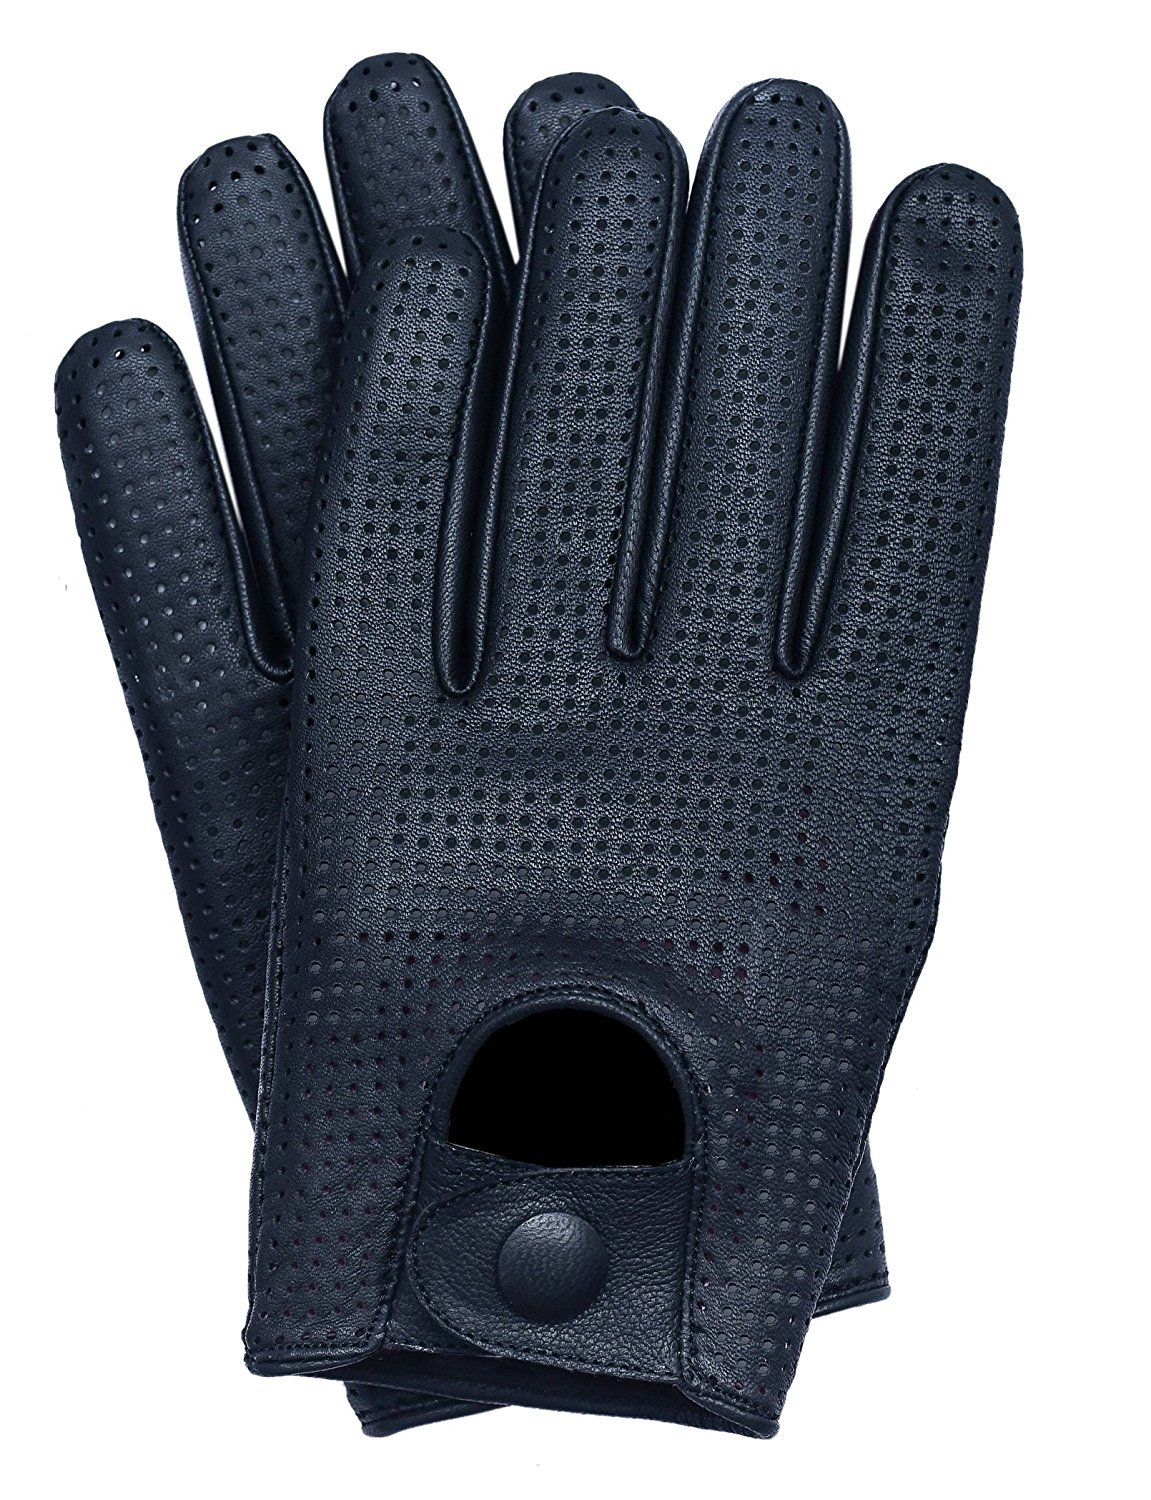 Riparo Men's Touchscreen Texting Mesh Perforated Summer Driving Motorcycle Leather Gloves (Medium, Black)